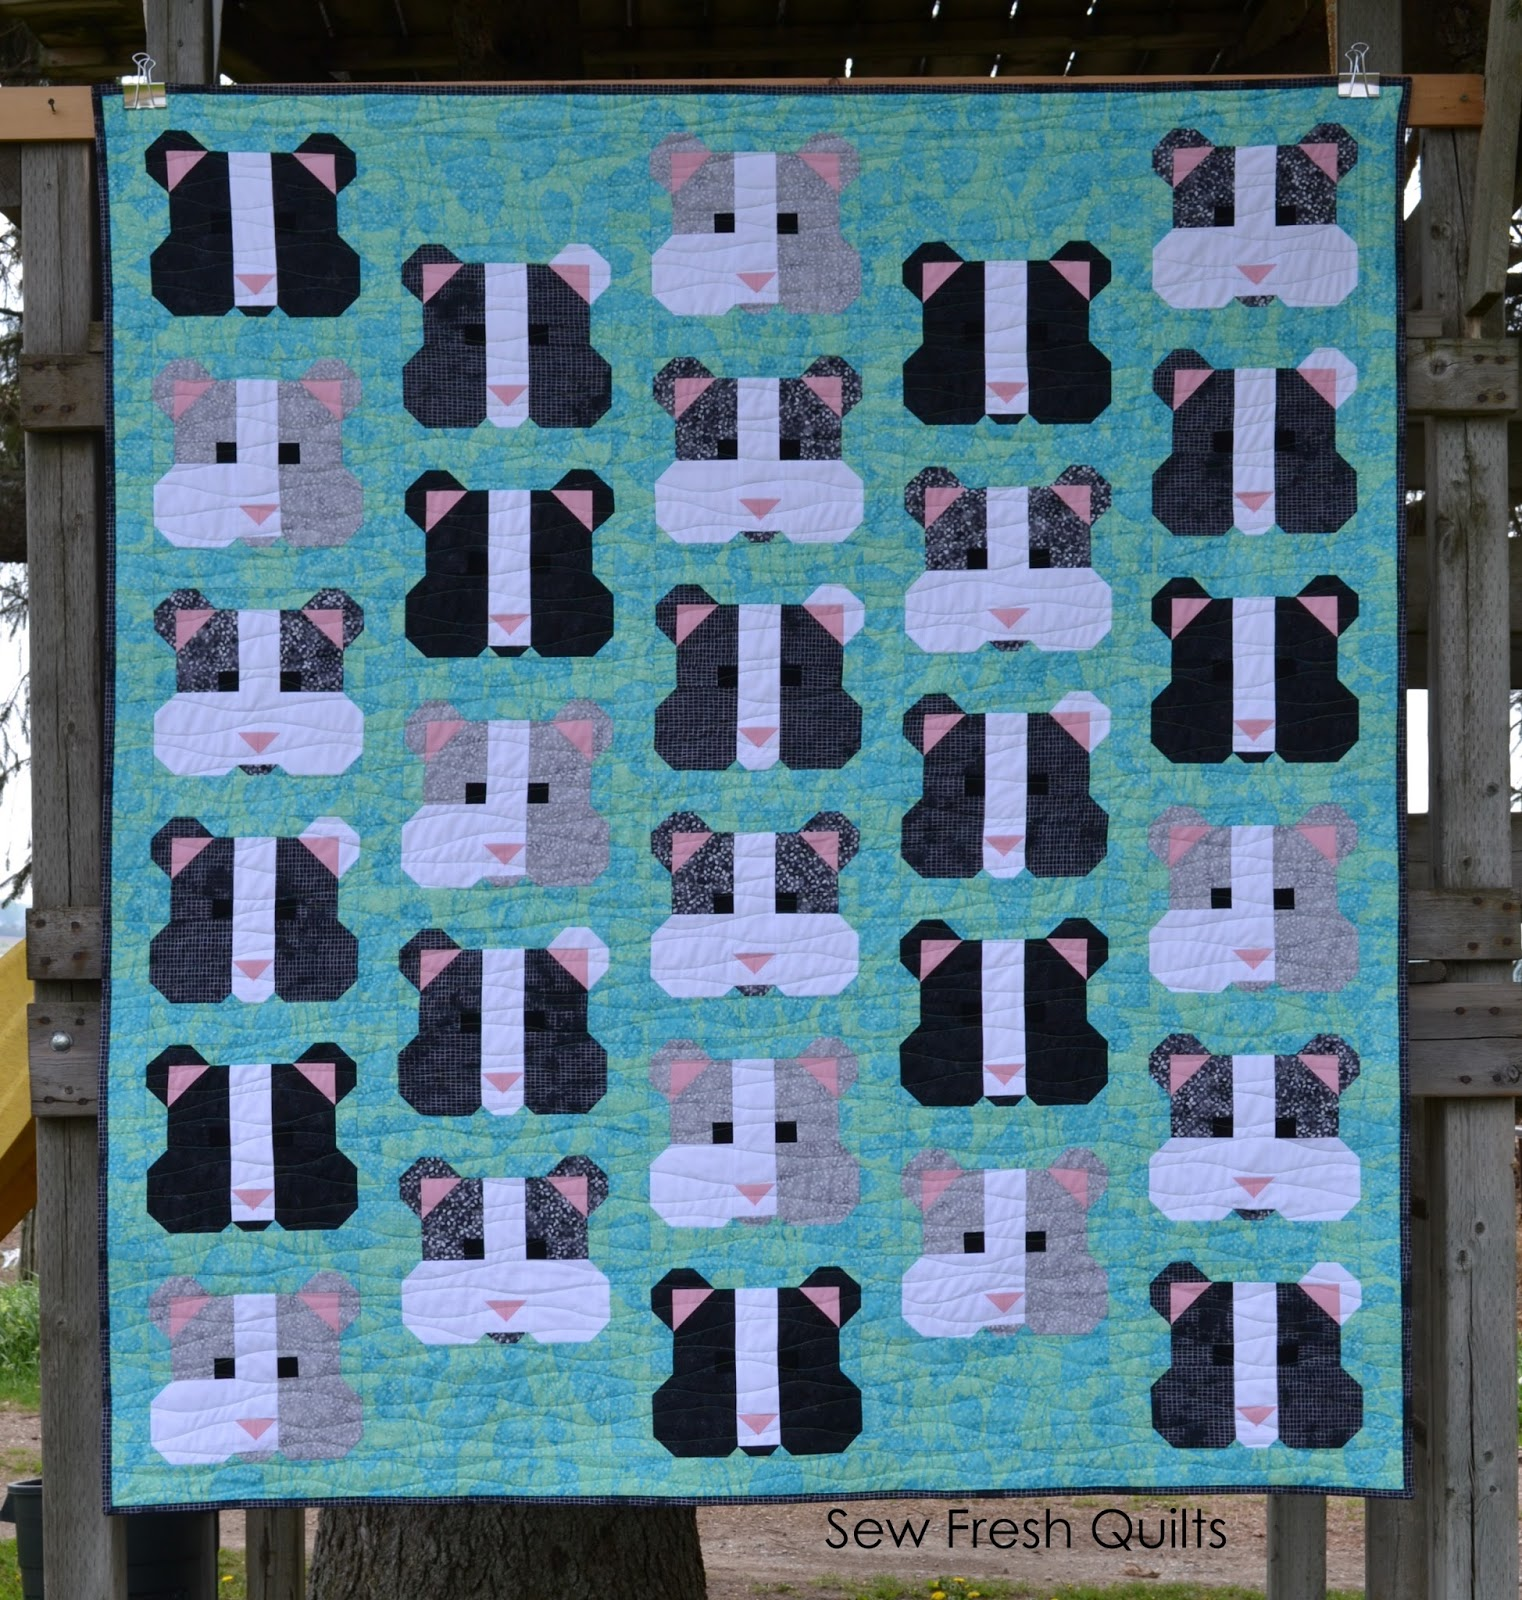 Sew fresh quilts my pet hamster quilt finishes my pet hamster quilt finishes jeuxipadfo Gallery